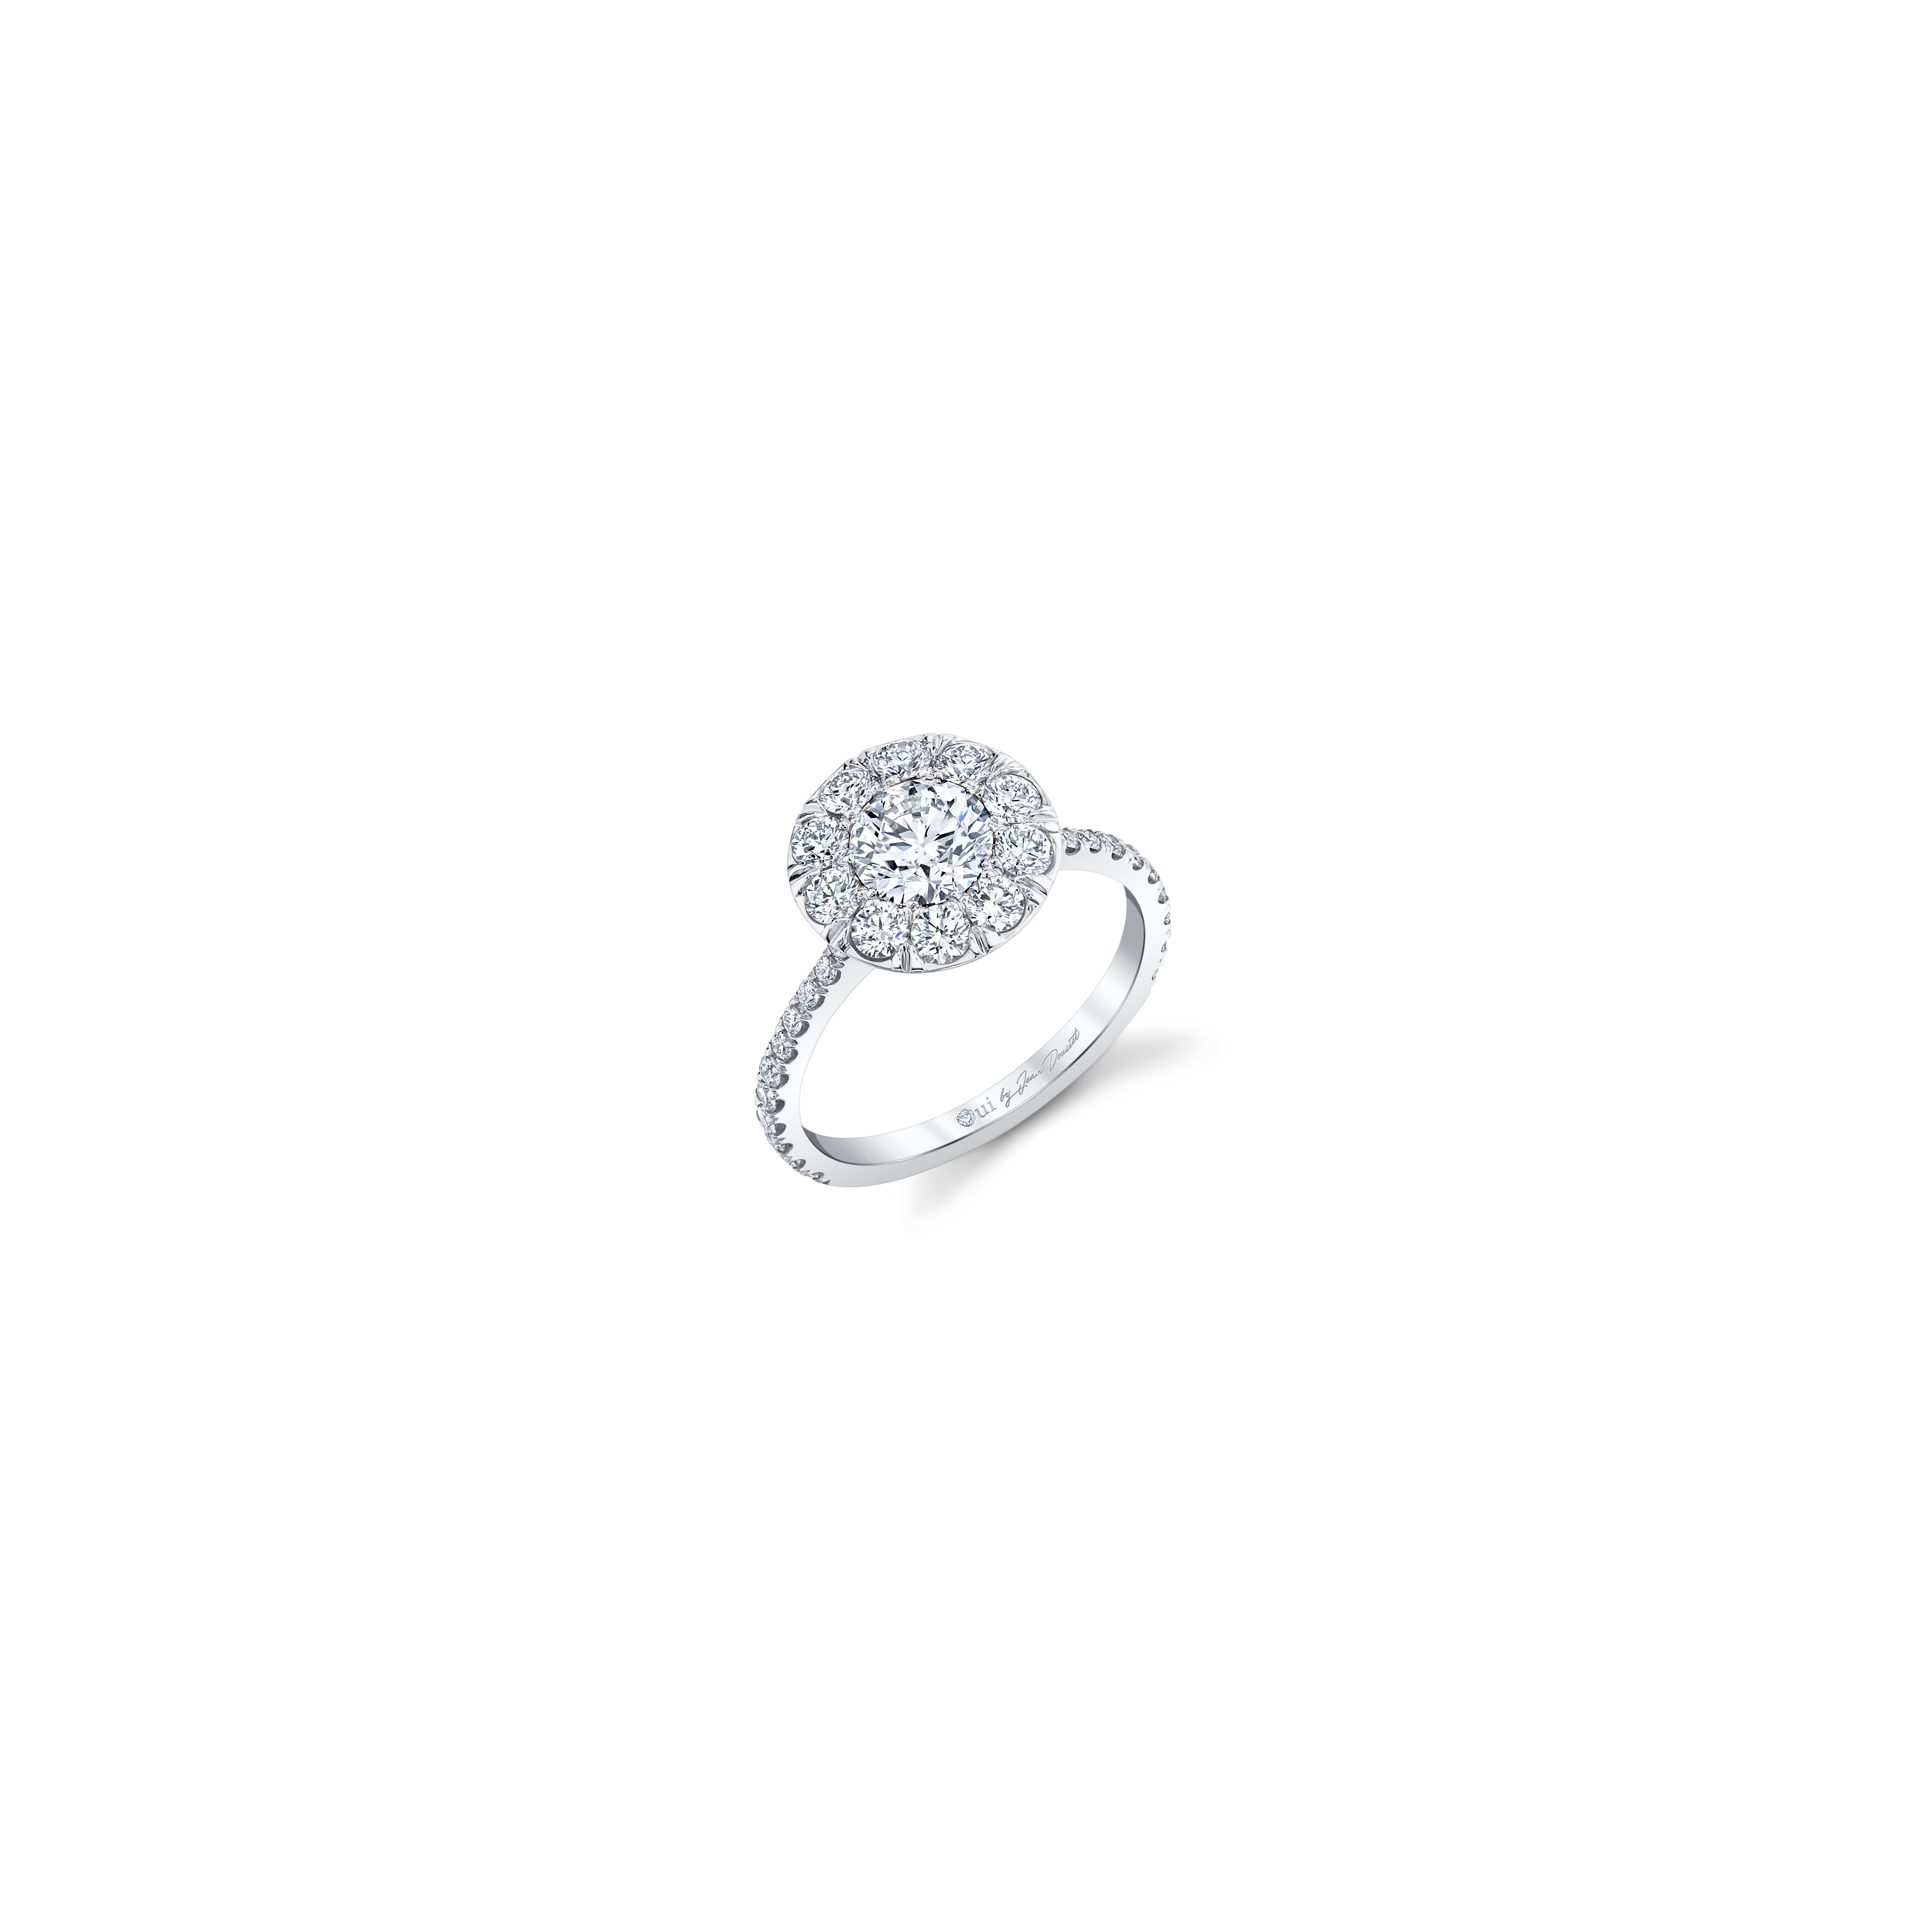 Eloise Floating Round Brilliant Seamless Solitaire® Engagement Ring with diamond pavé in 18k White Gold Front View by Oui by Jean Dousset